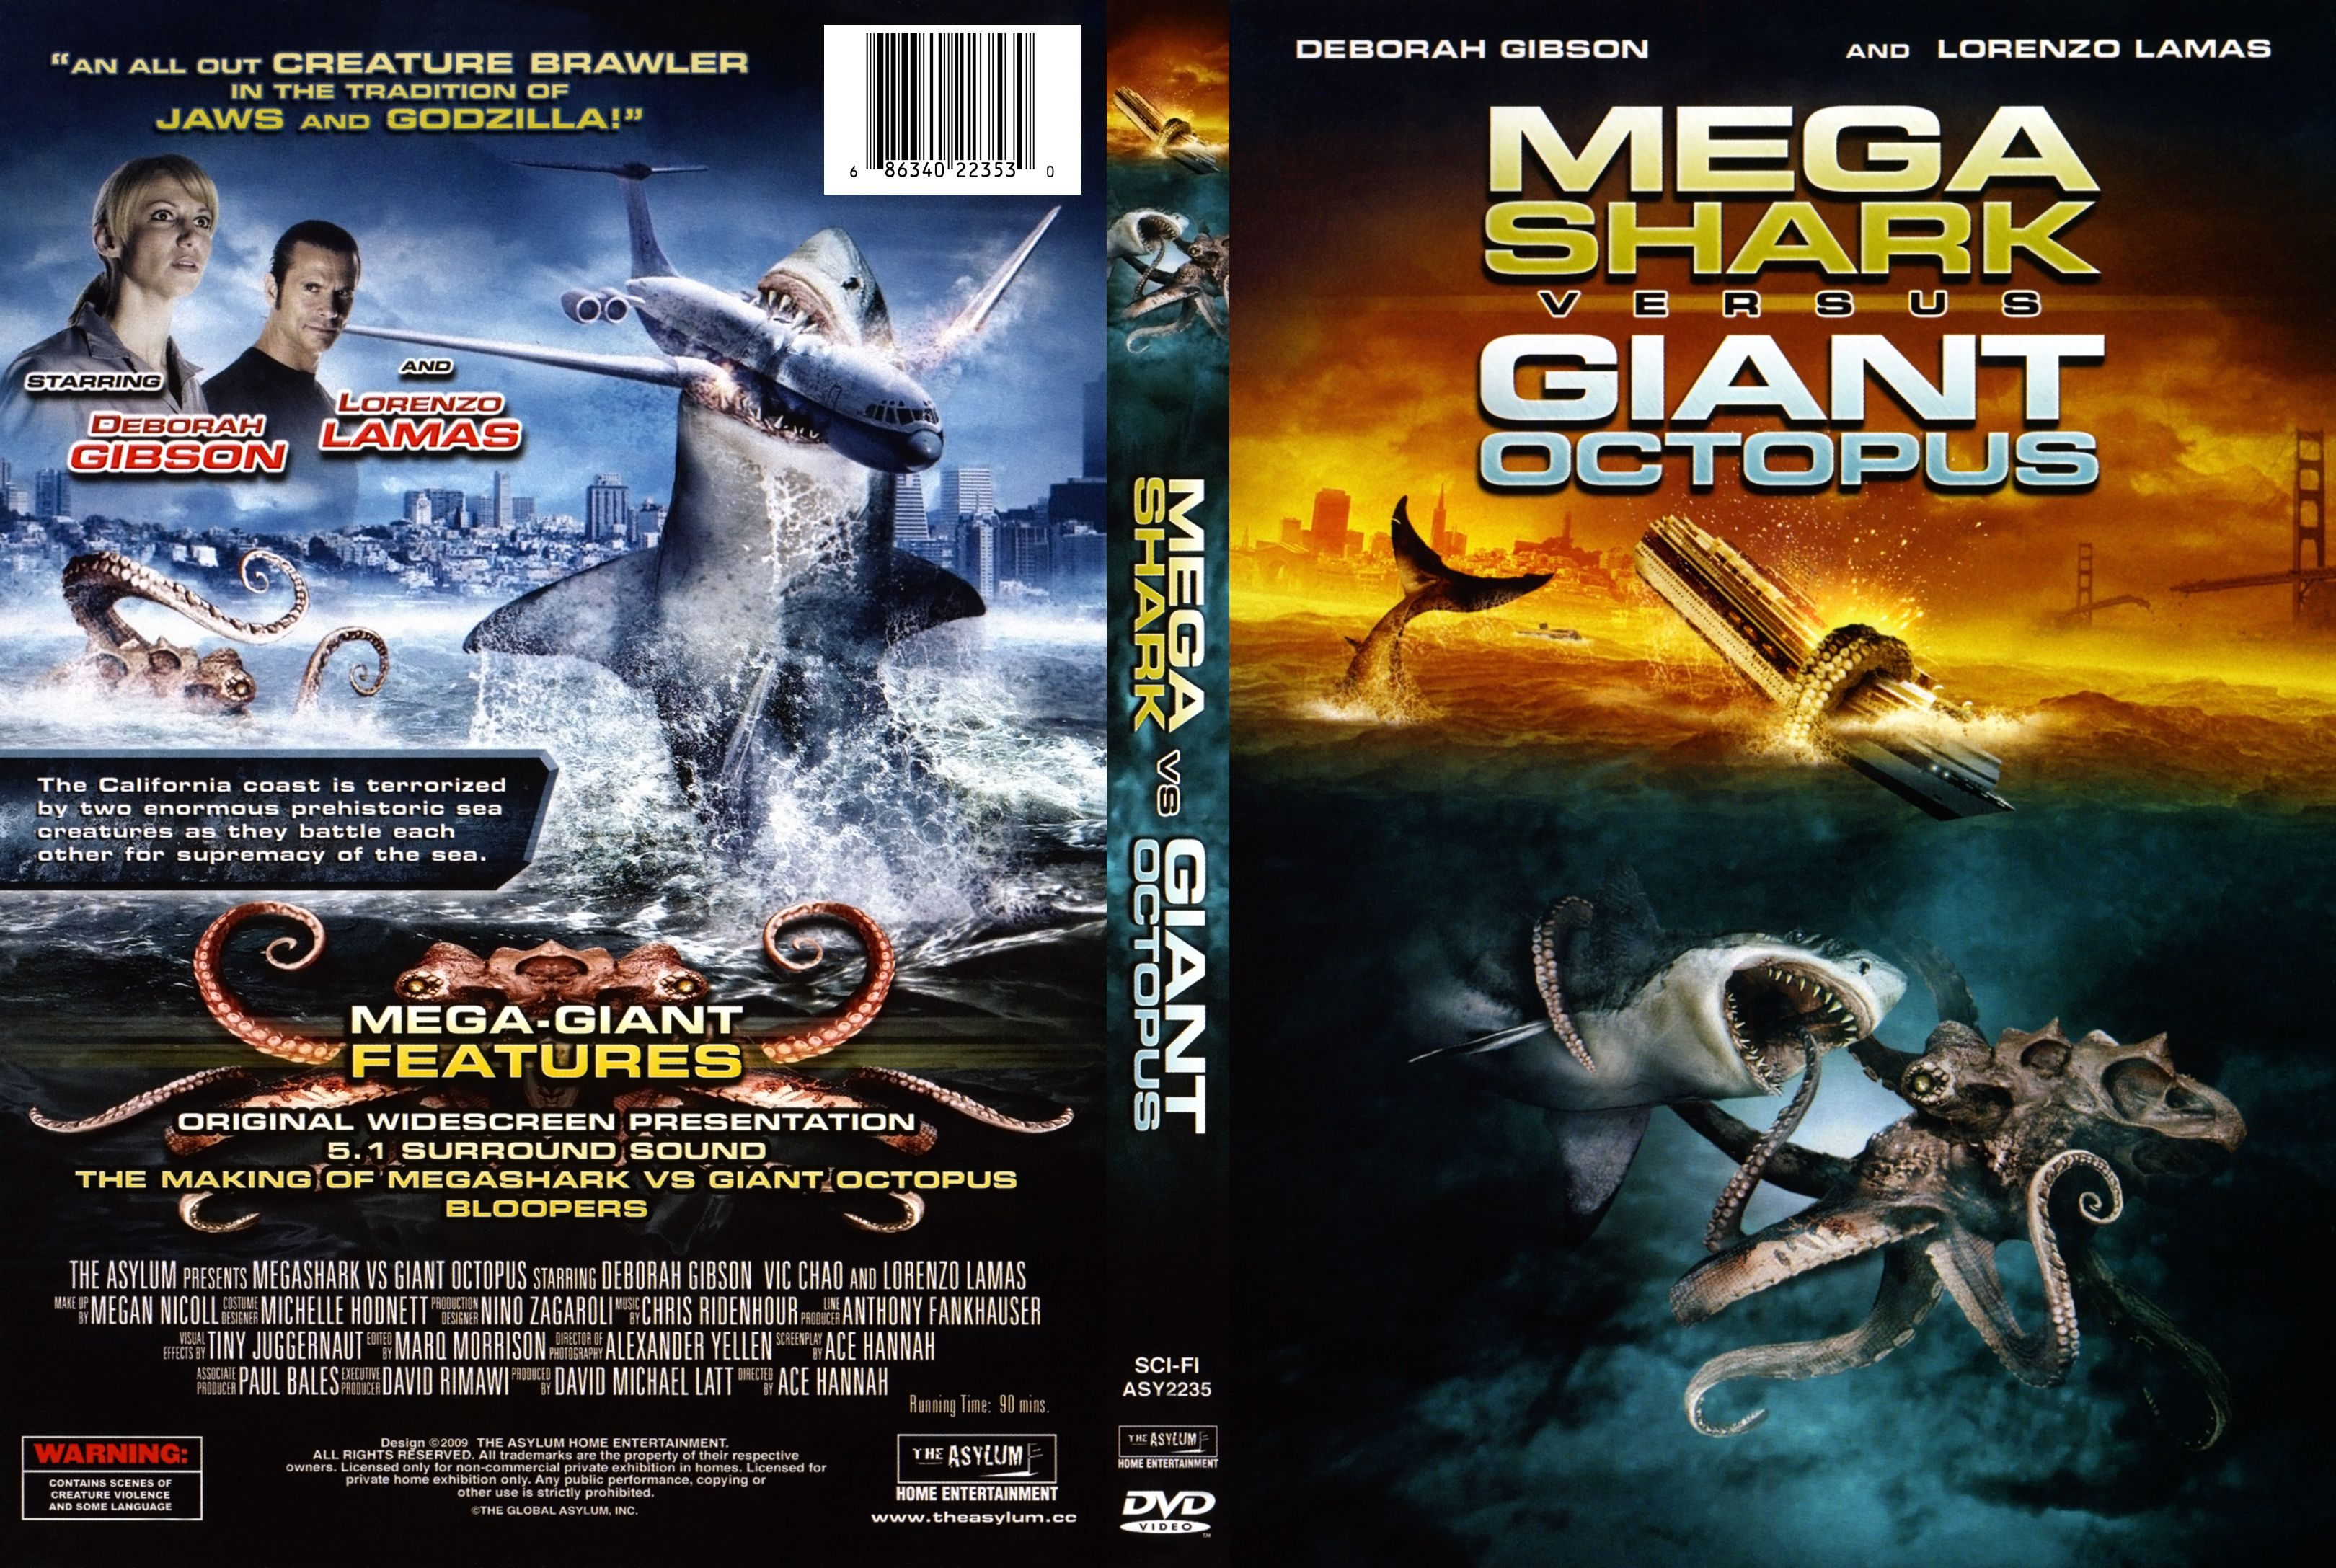 mega shark vs giant octopus movie poster | Mega shark vs ...